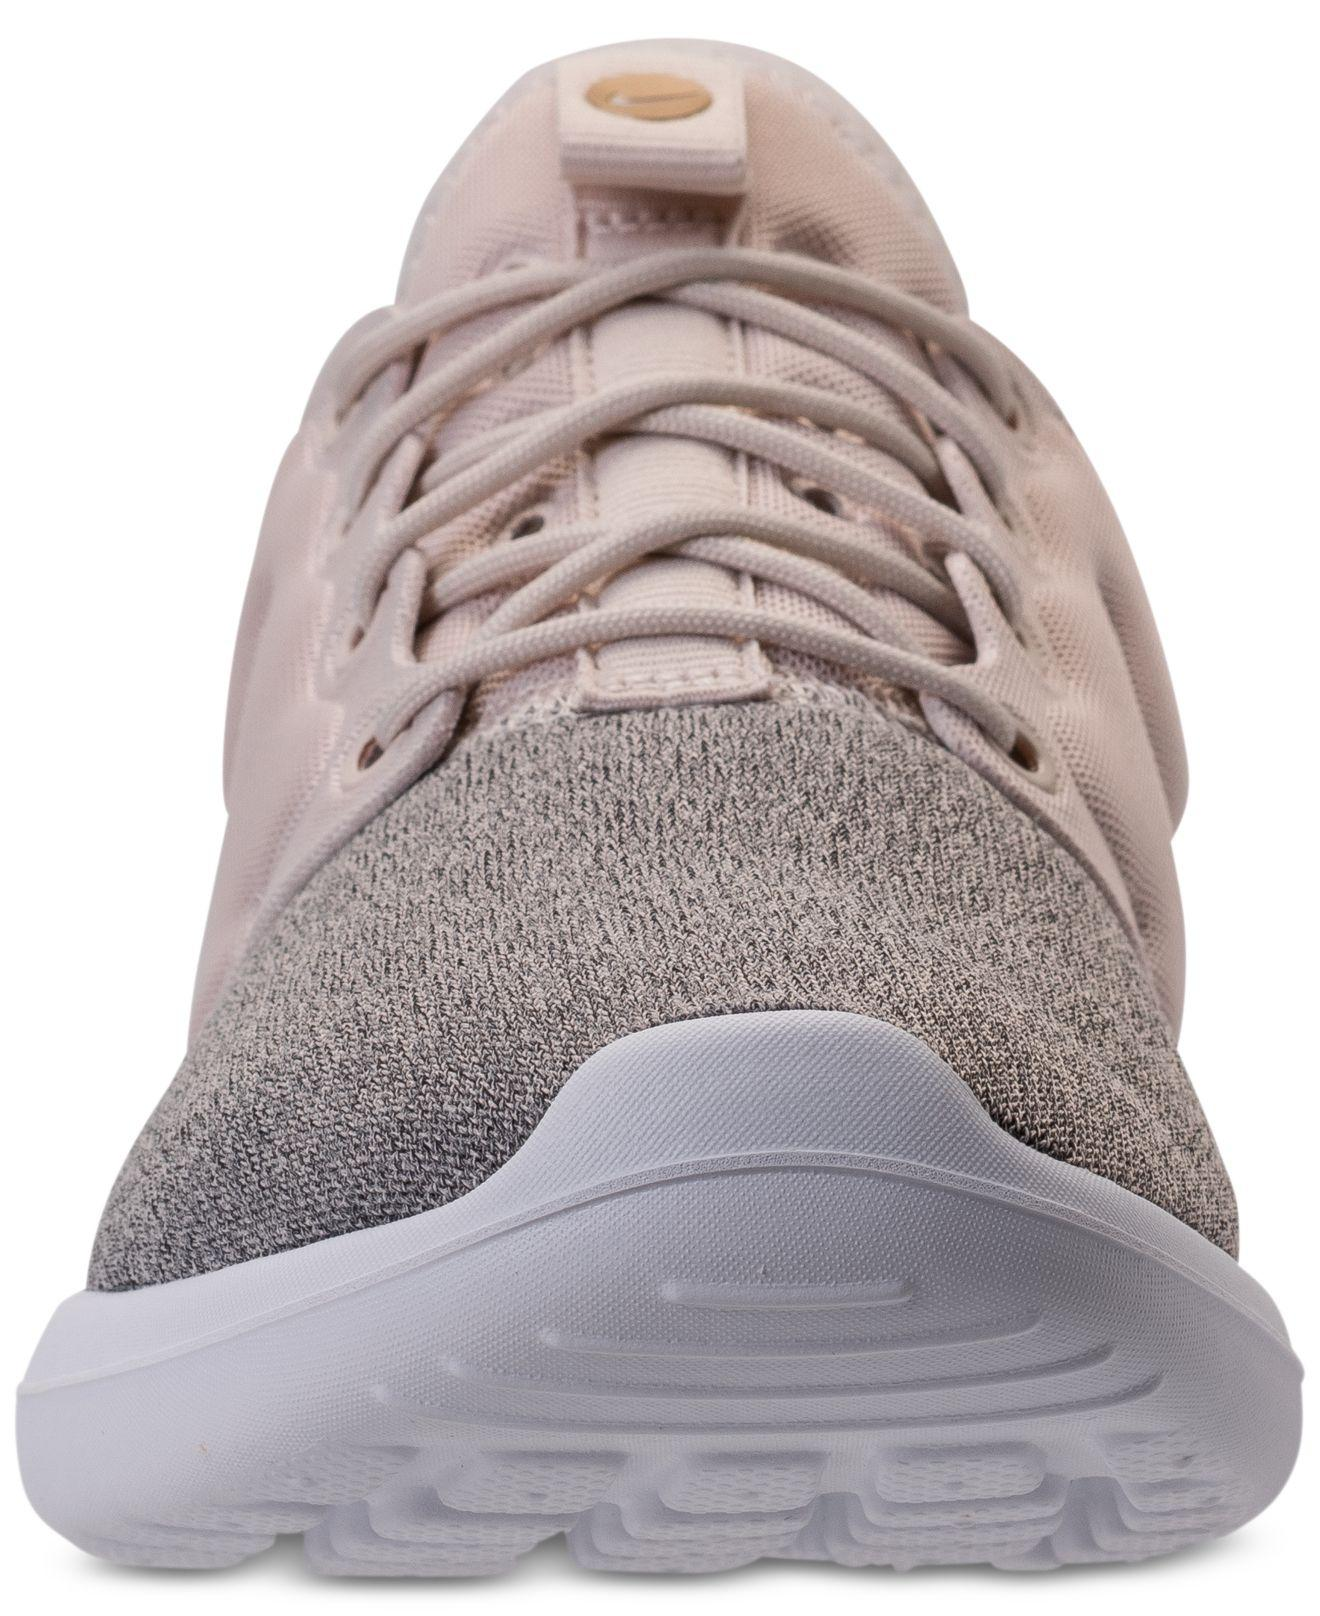 2eada8f8e7b8 Lyst - Nike Women s Roshe Two Knit Casual Sneakers From Finish Line ...